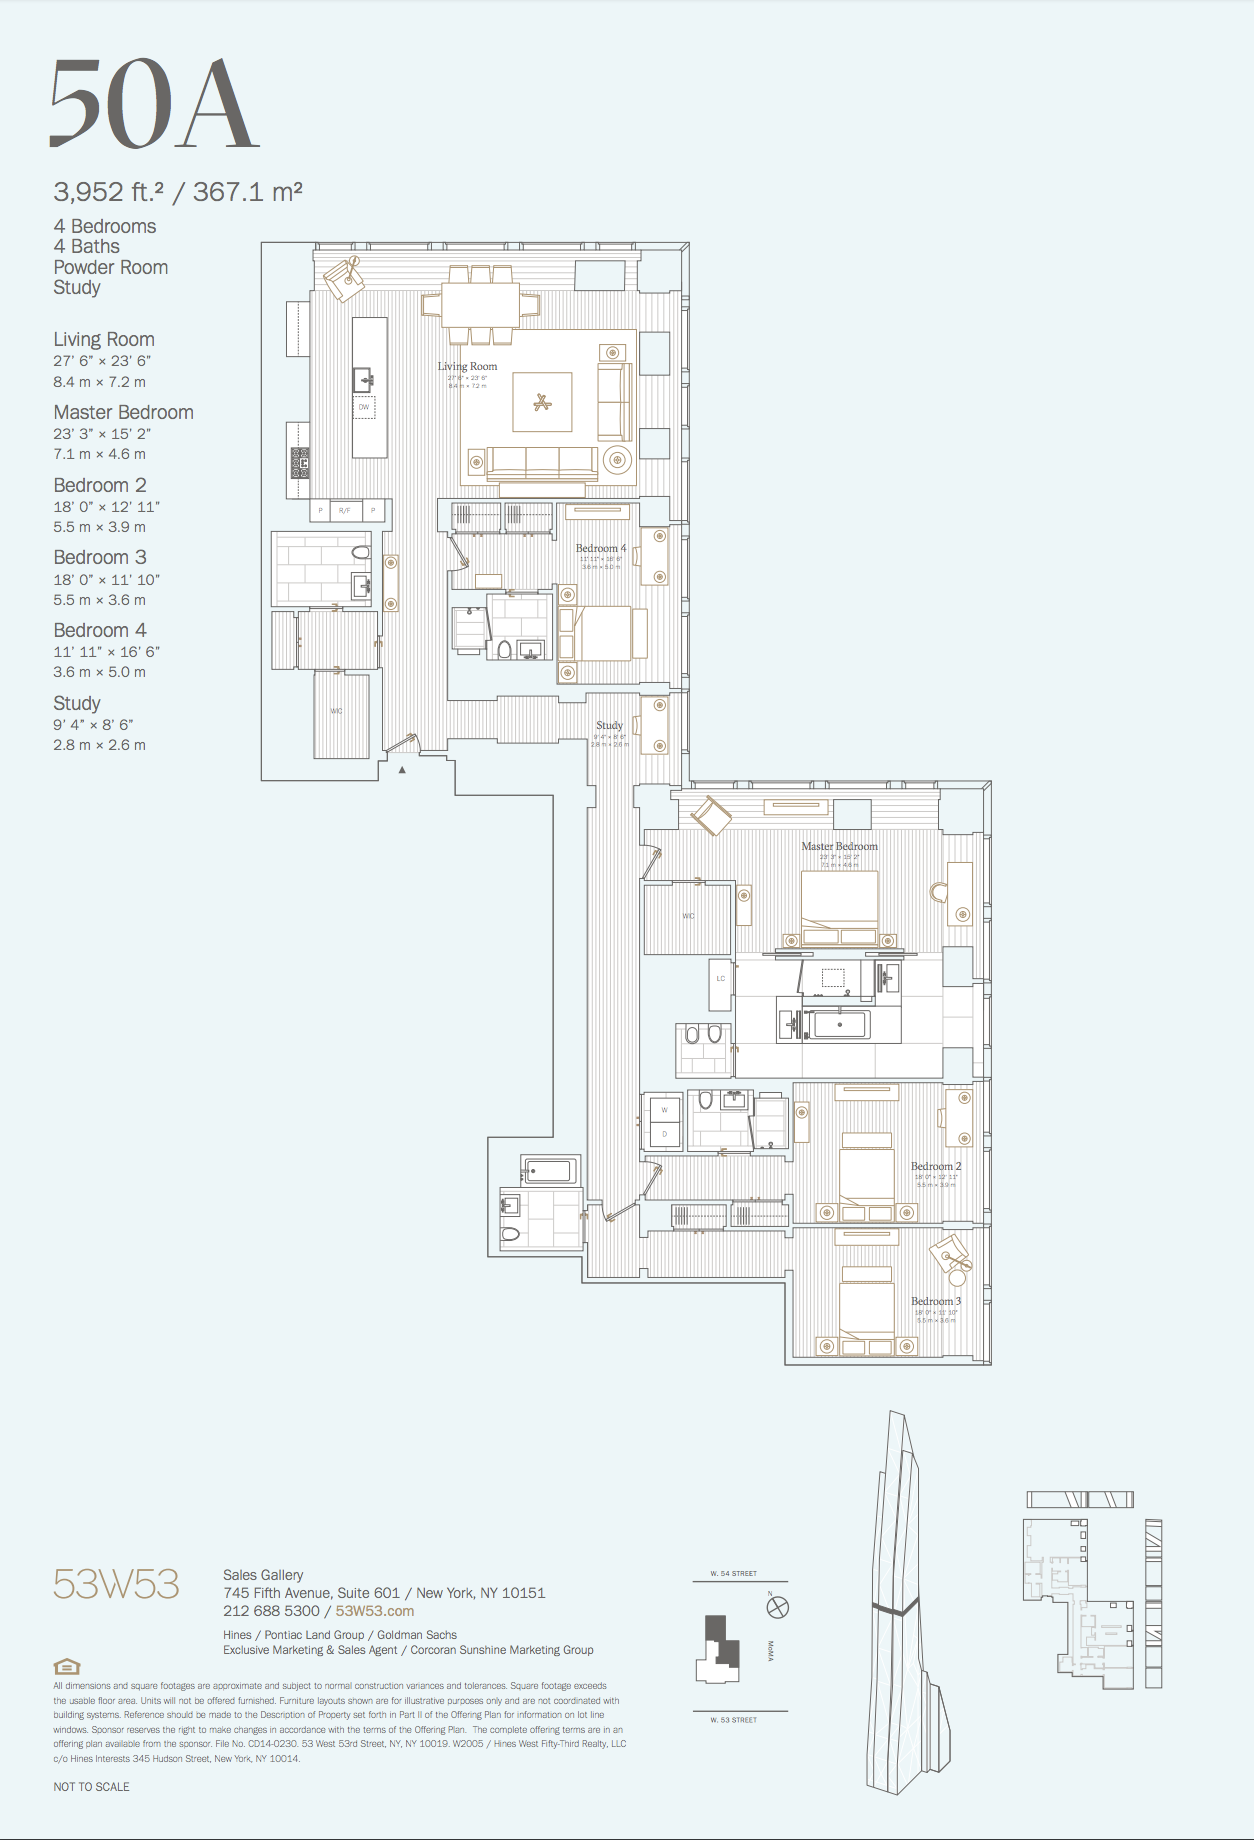 50a 4 Bedrooms 4 5 Bathrooms 3 952 Sq Ft 367 1 Sq M View Of The City And Park Open To Nort Floor Plans Hotel Room Plan Penthouse Apartment Floor Plan